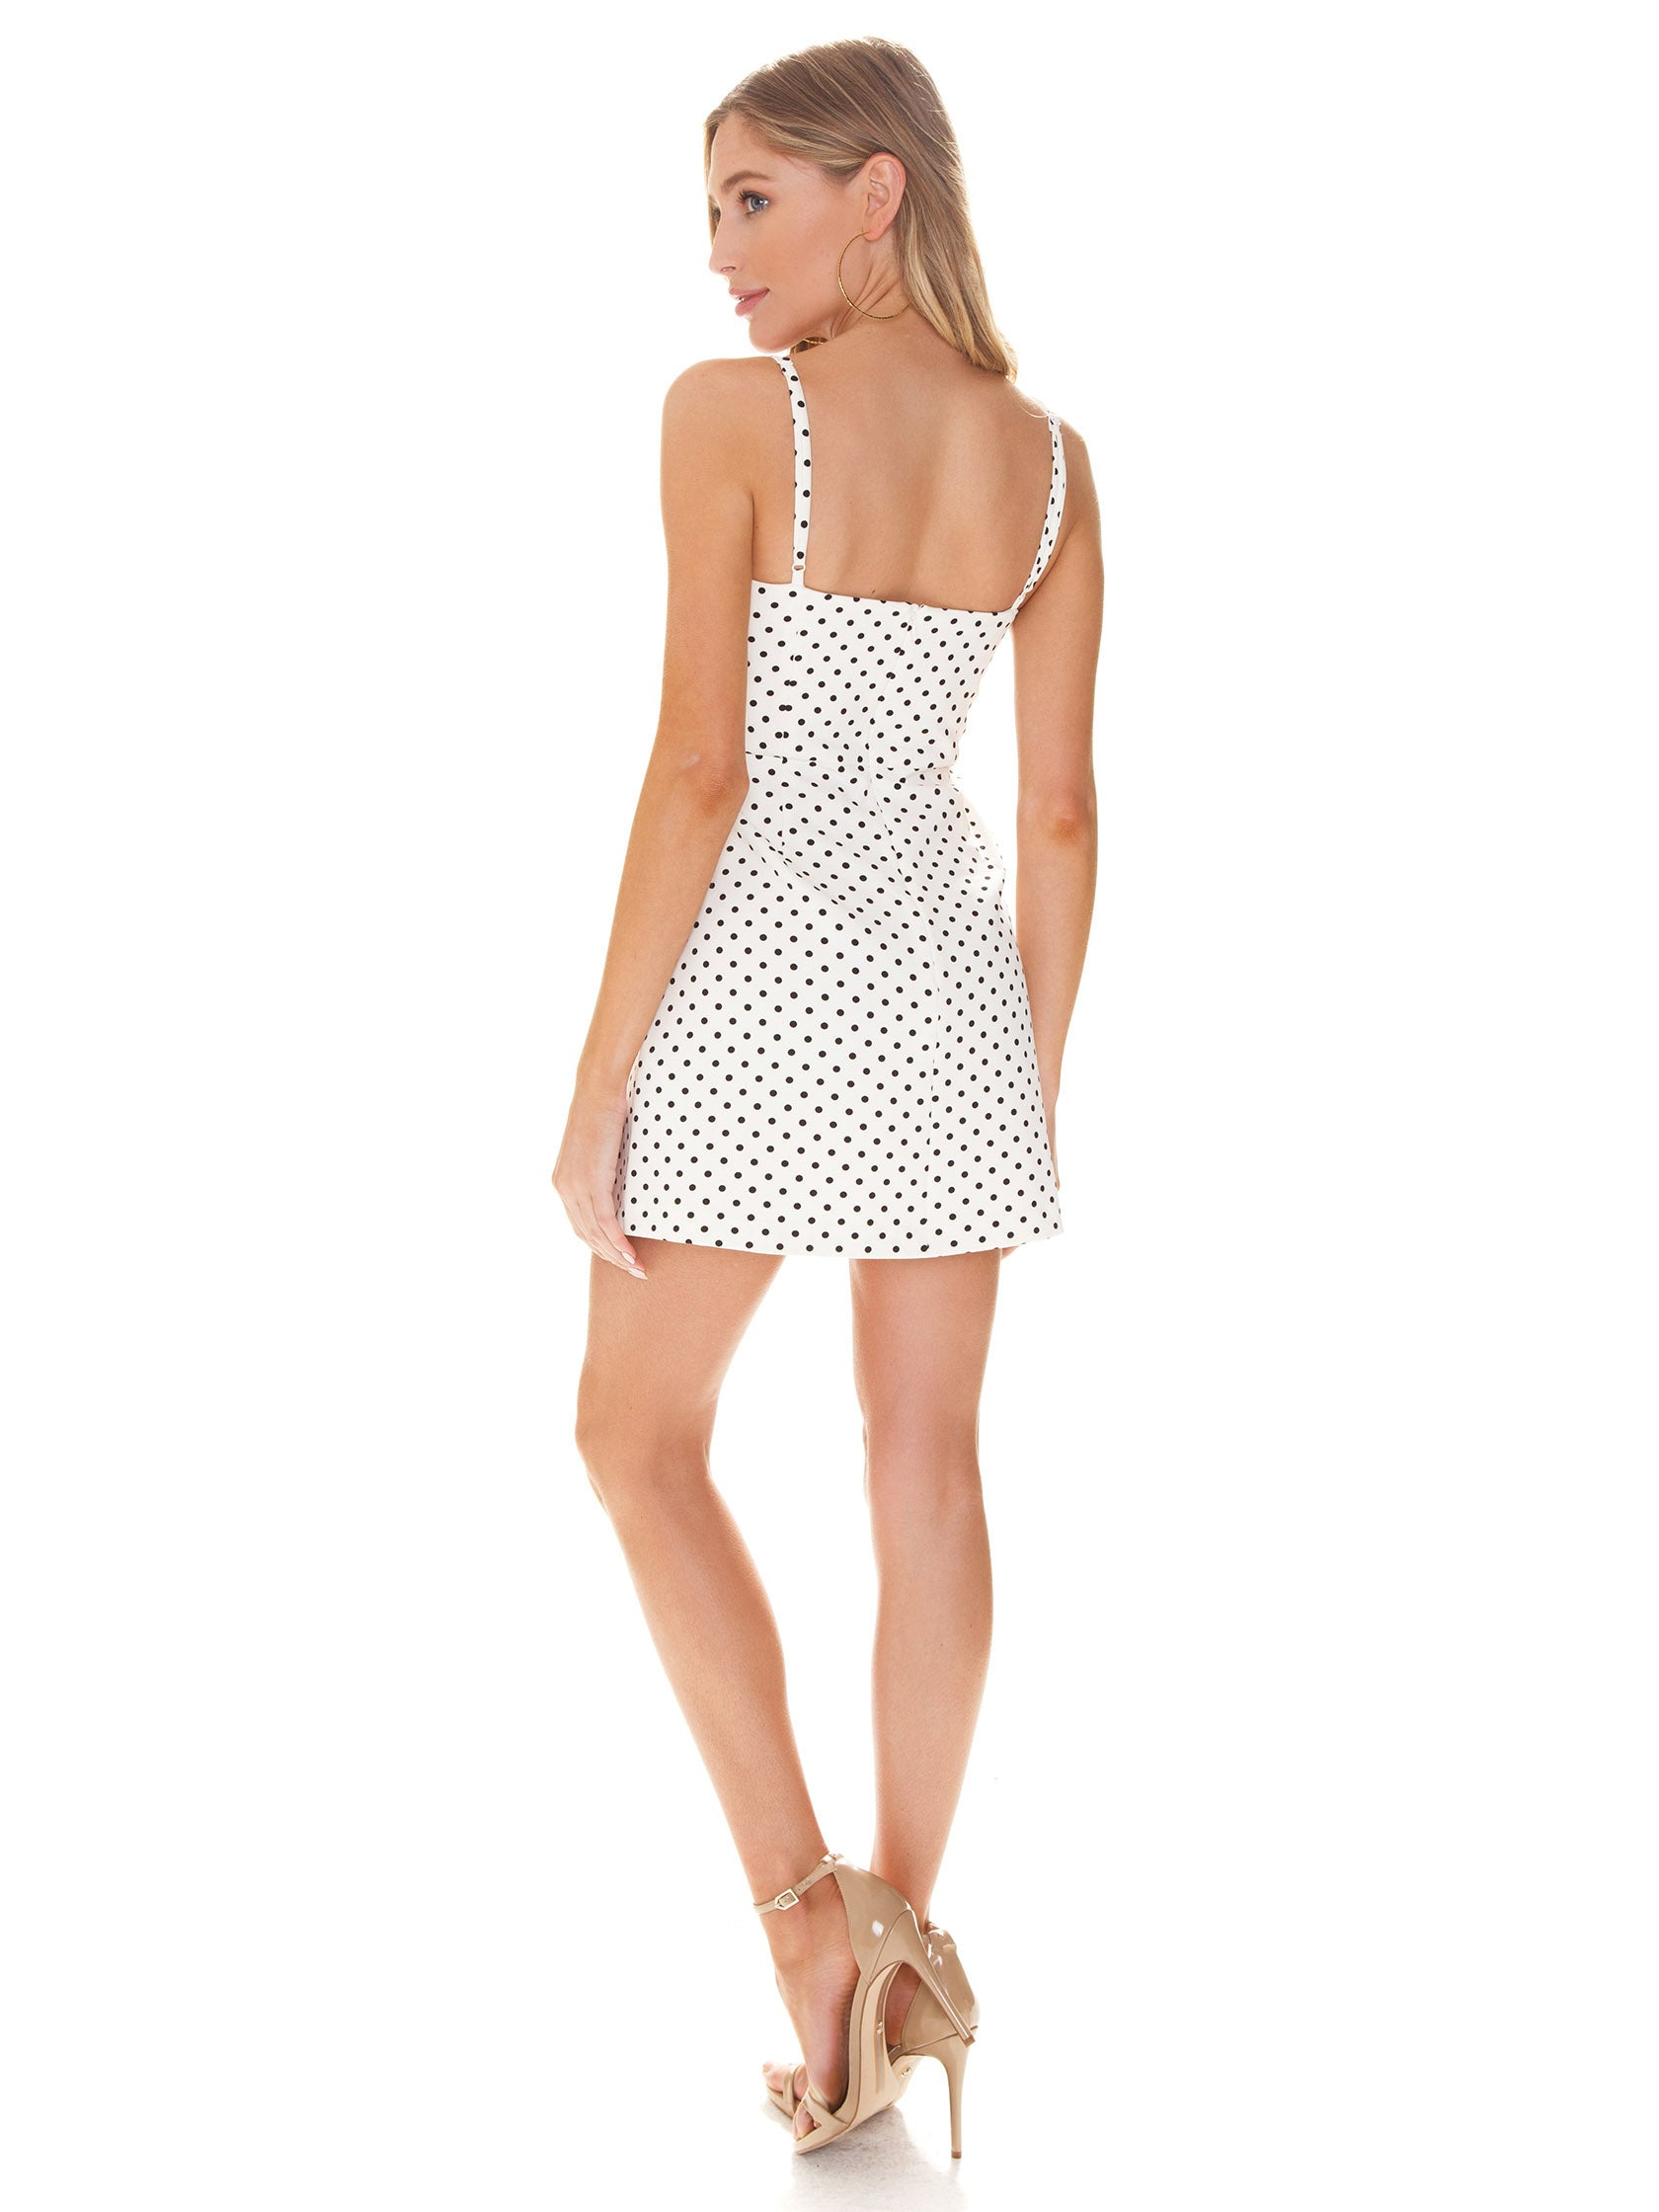 Women wearing a dress rental from French Connection called Polka Dot Whisper Dress